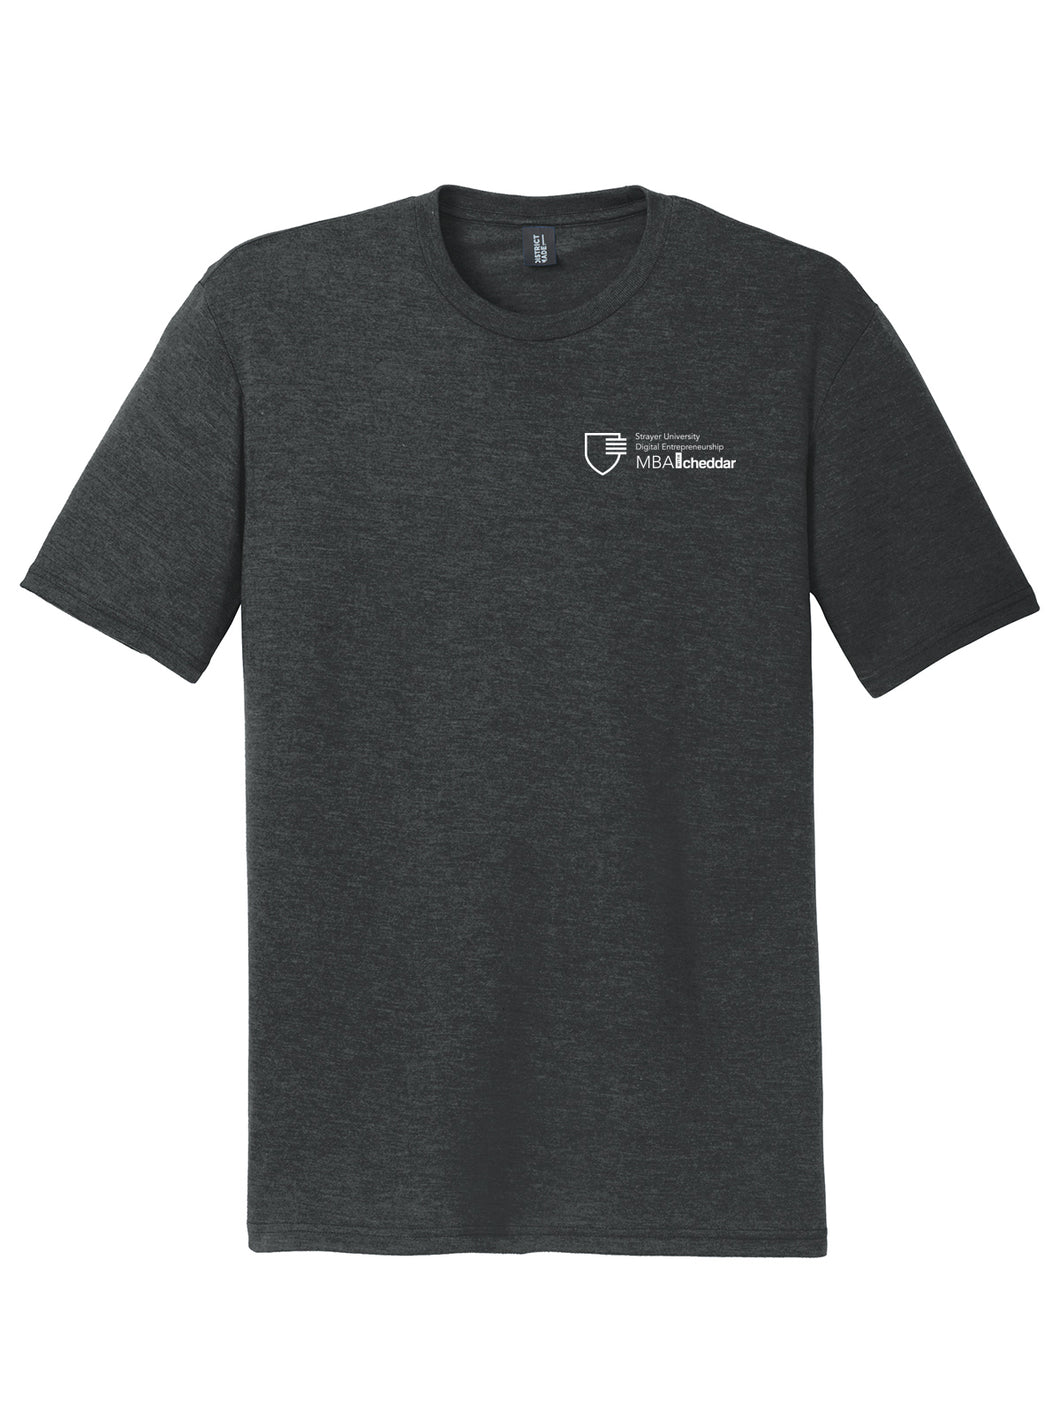 MBA CHEDDAR - District Perfect Tri Tee - Black Frost